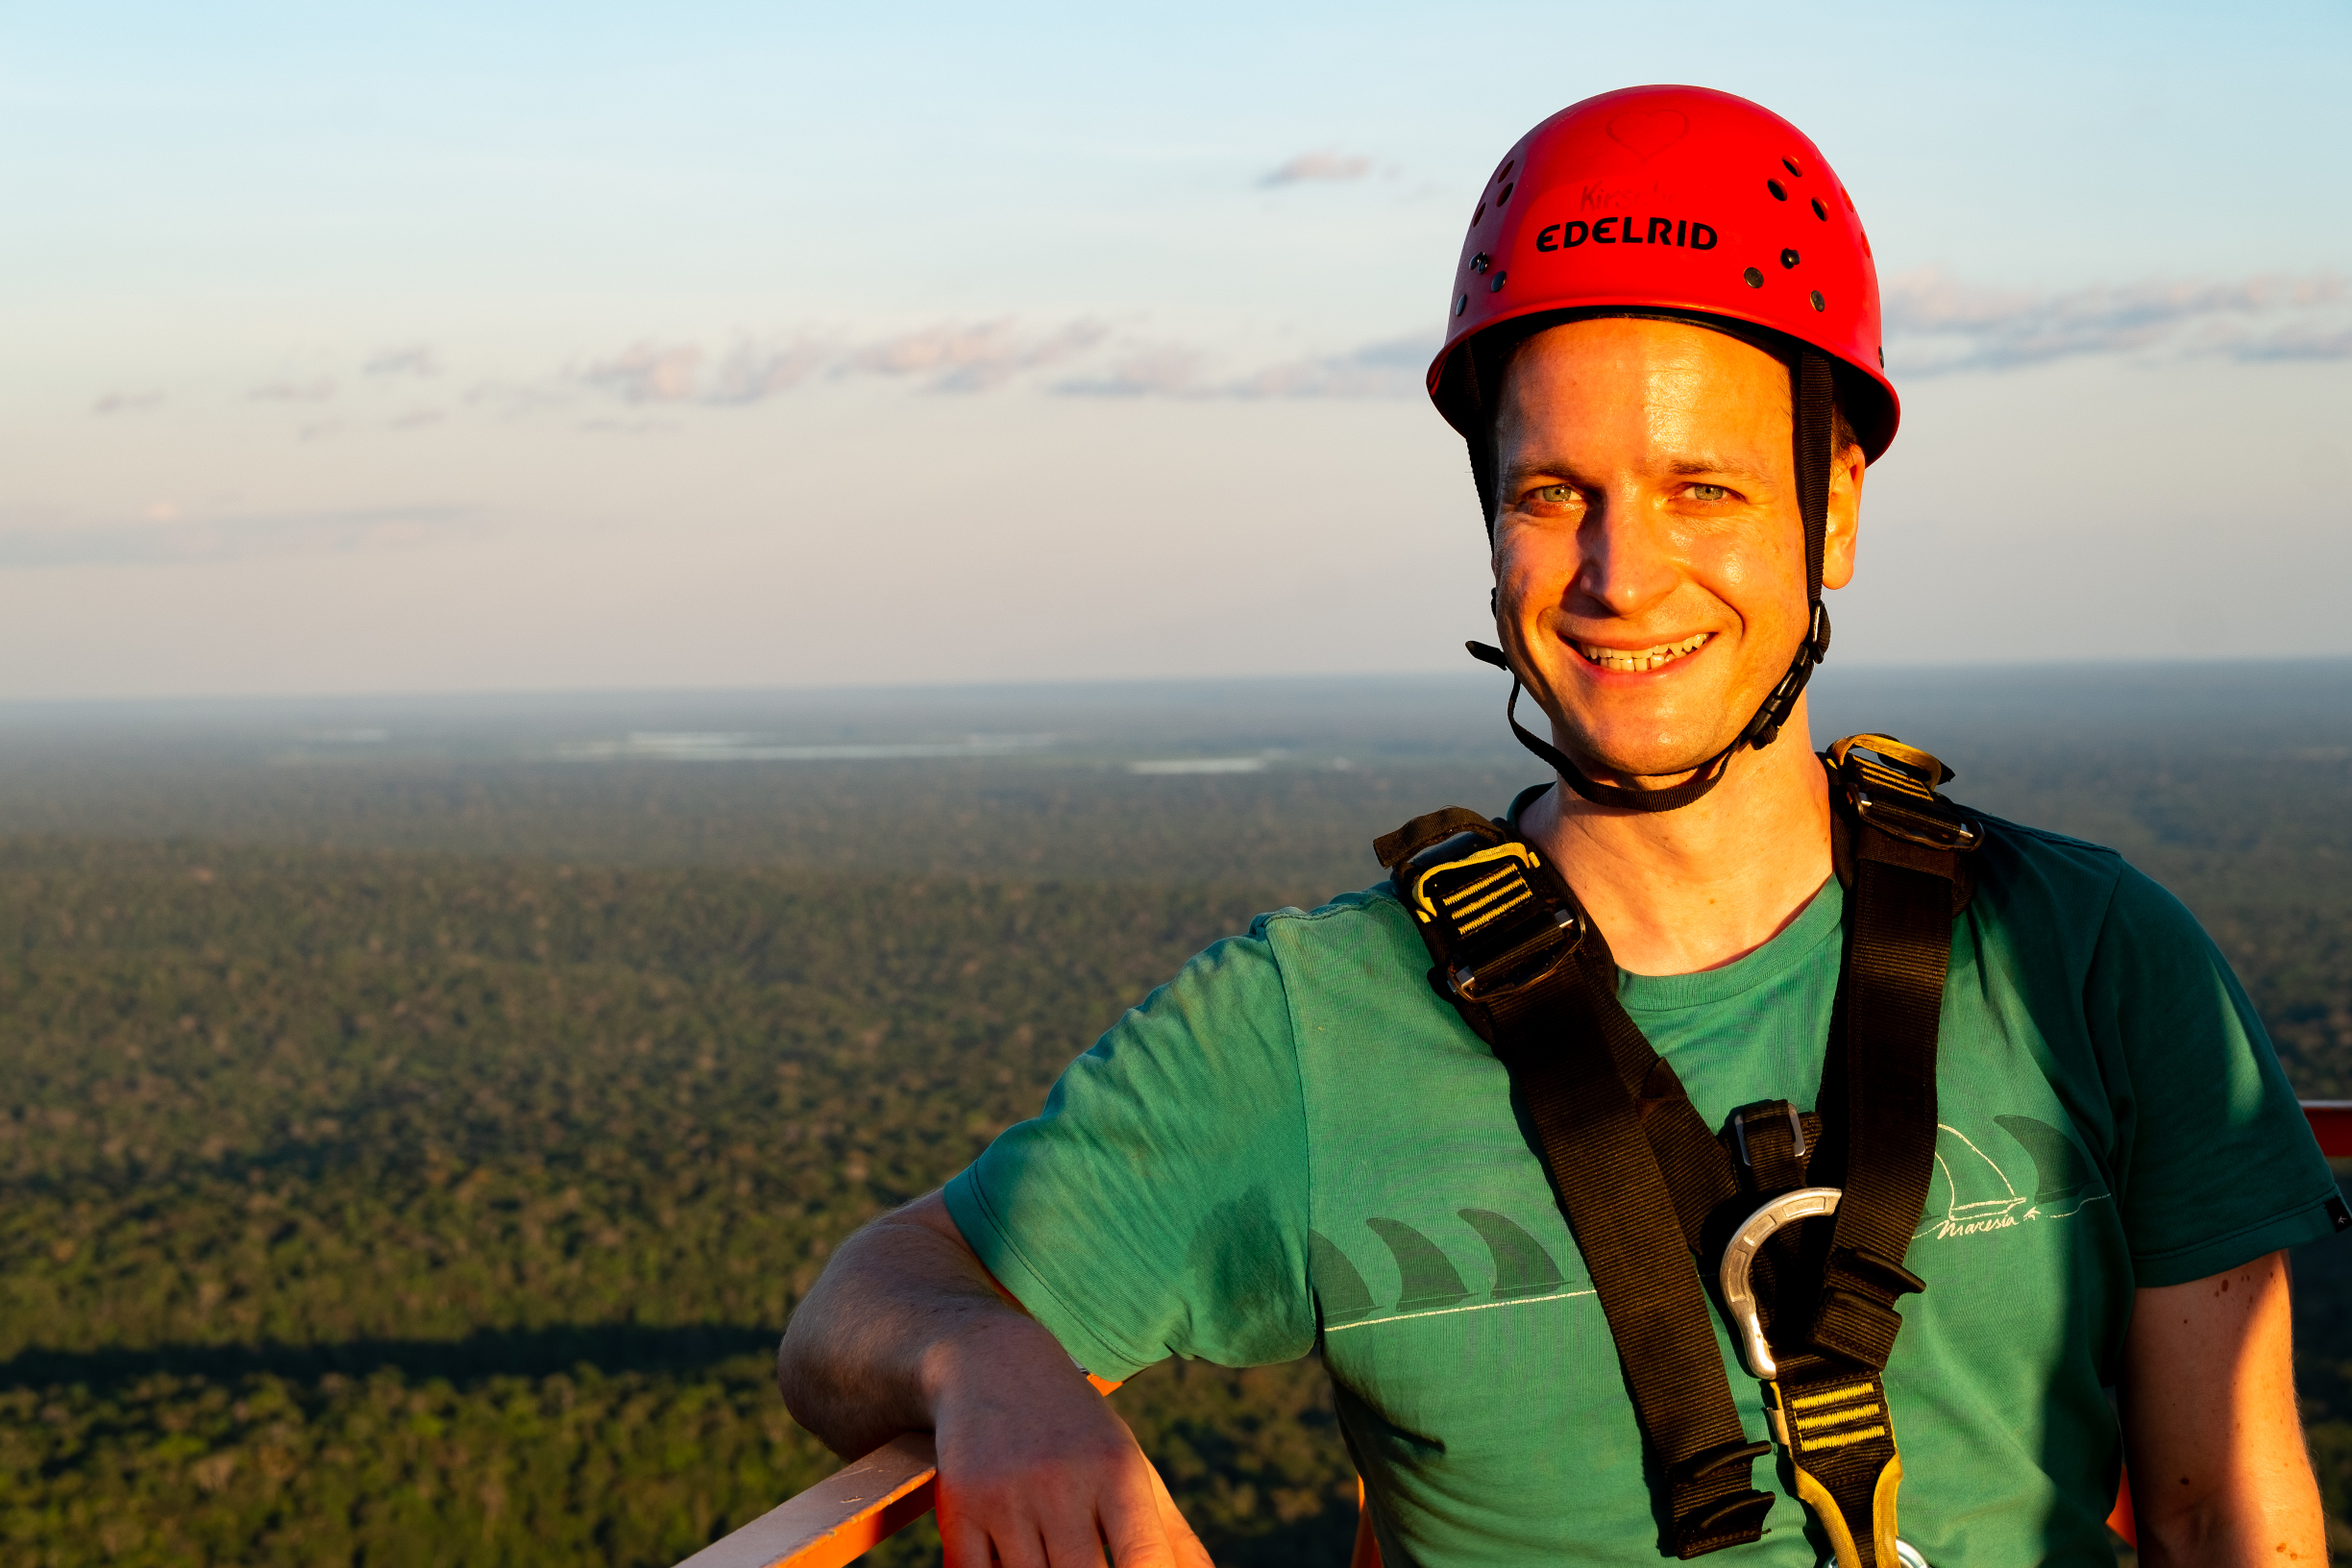 Stefan Wolff stands atop the ATTO tall tower in the warm glow of the evening sun. Behind him the Amazon rainforest strechtes to the horizon. You can see the Uatuma river glinting in the distance between the trees.